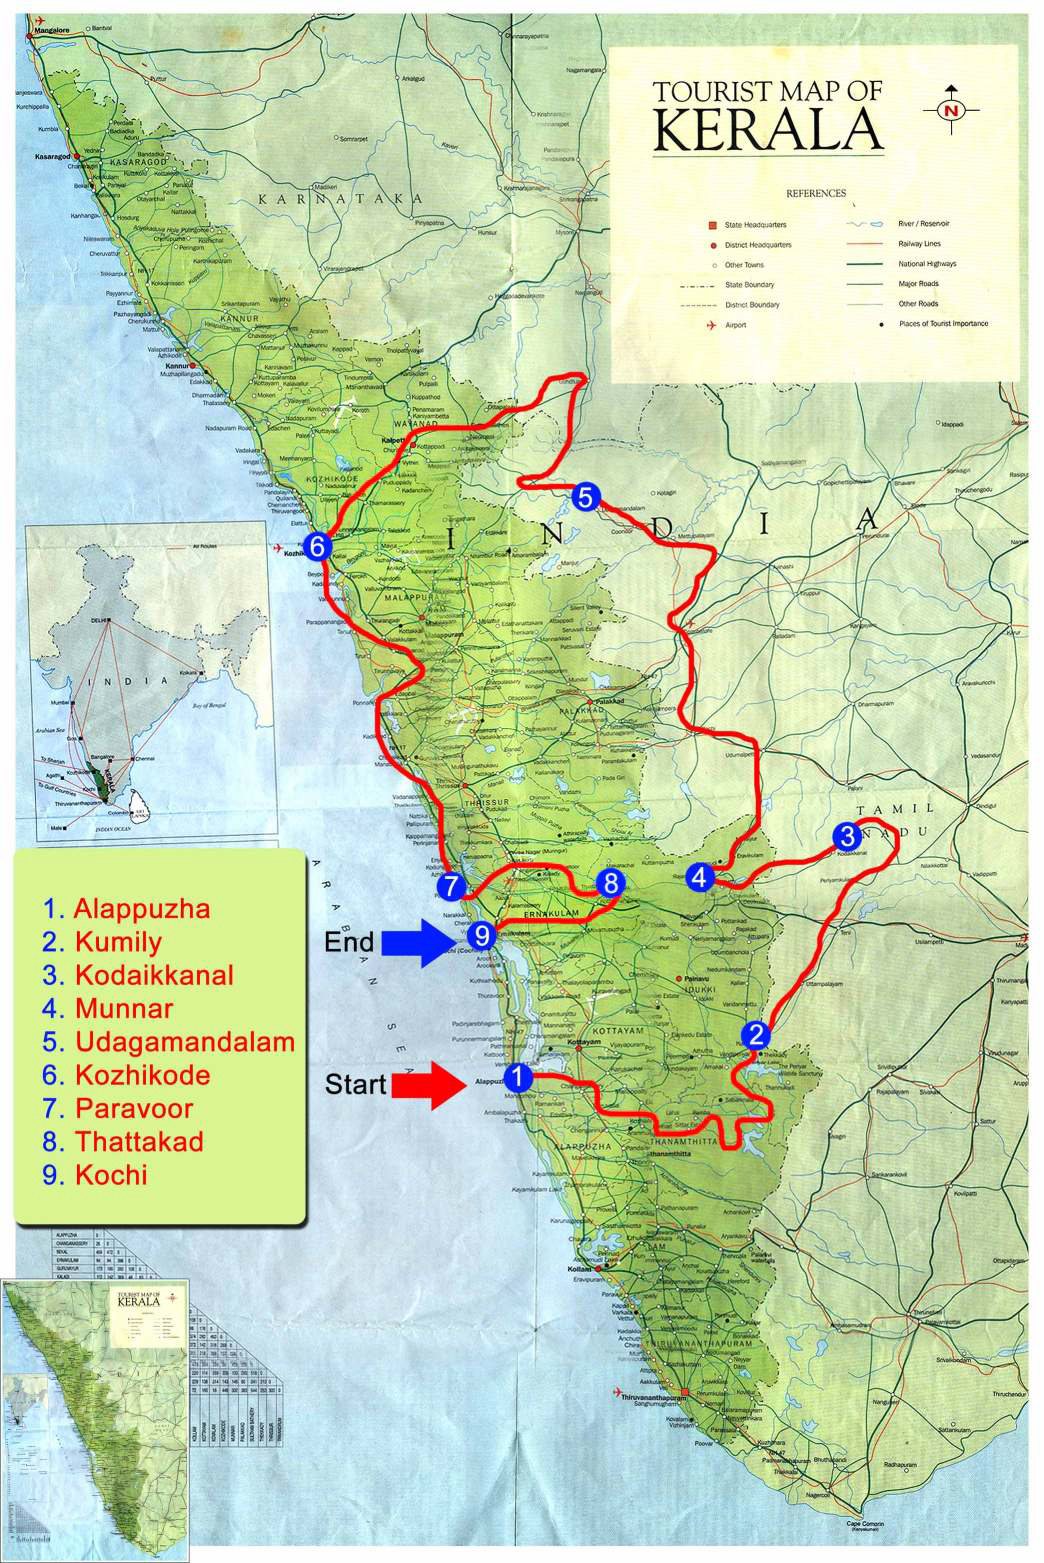 Bike Tours And Vacations In Kerala Motorbike Motorcycle